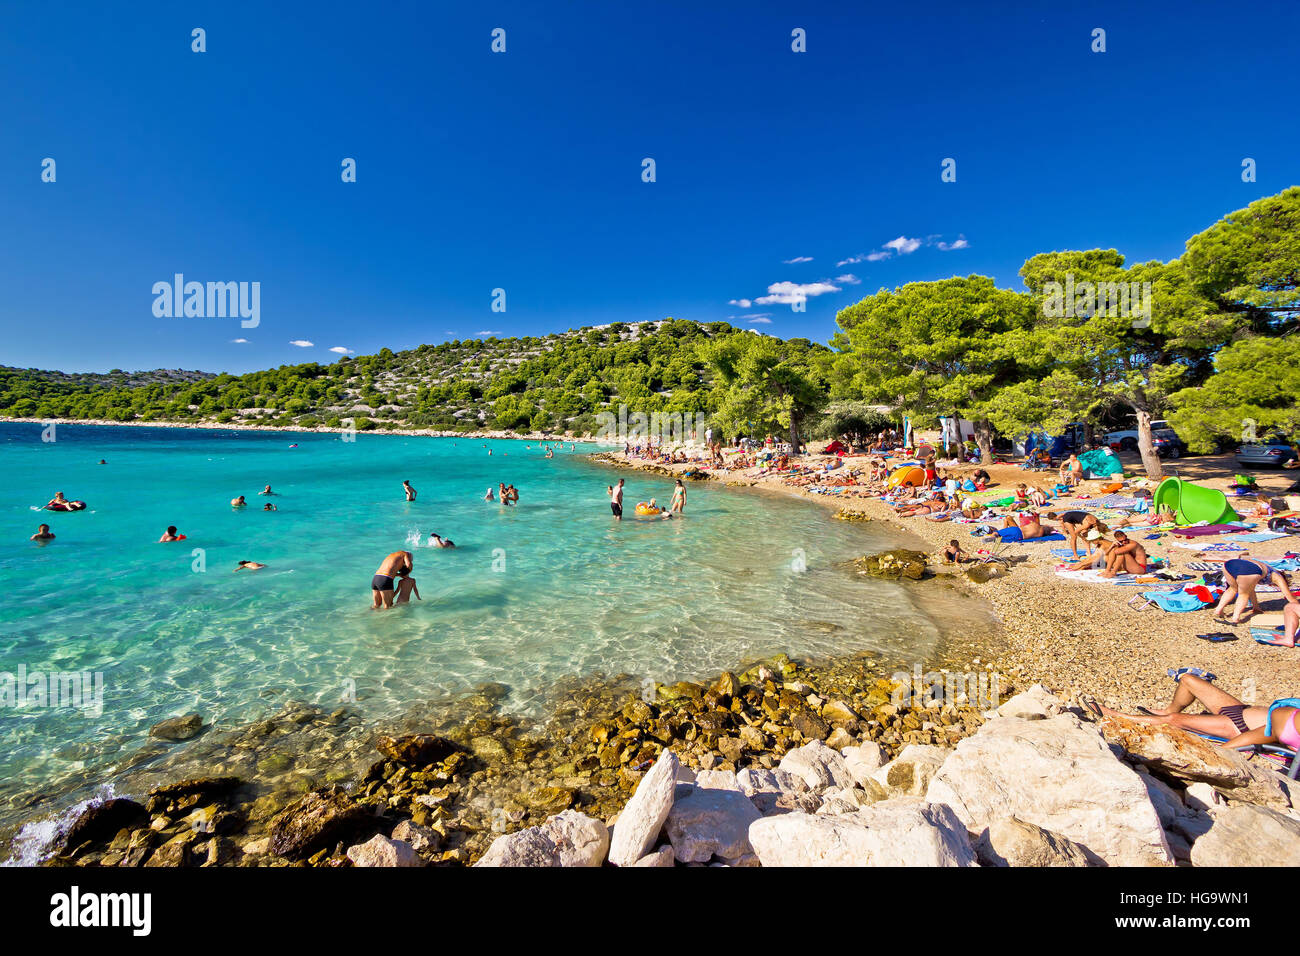 MURTER, CROATIA - AUGUST 17: Unidentified people enjoying summer holldays on crystal clear turquoise beach in Croatia, - Stock Image